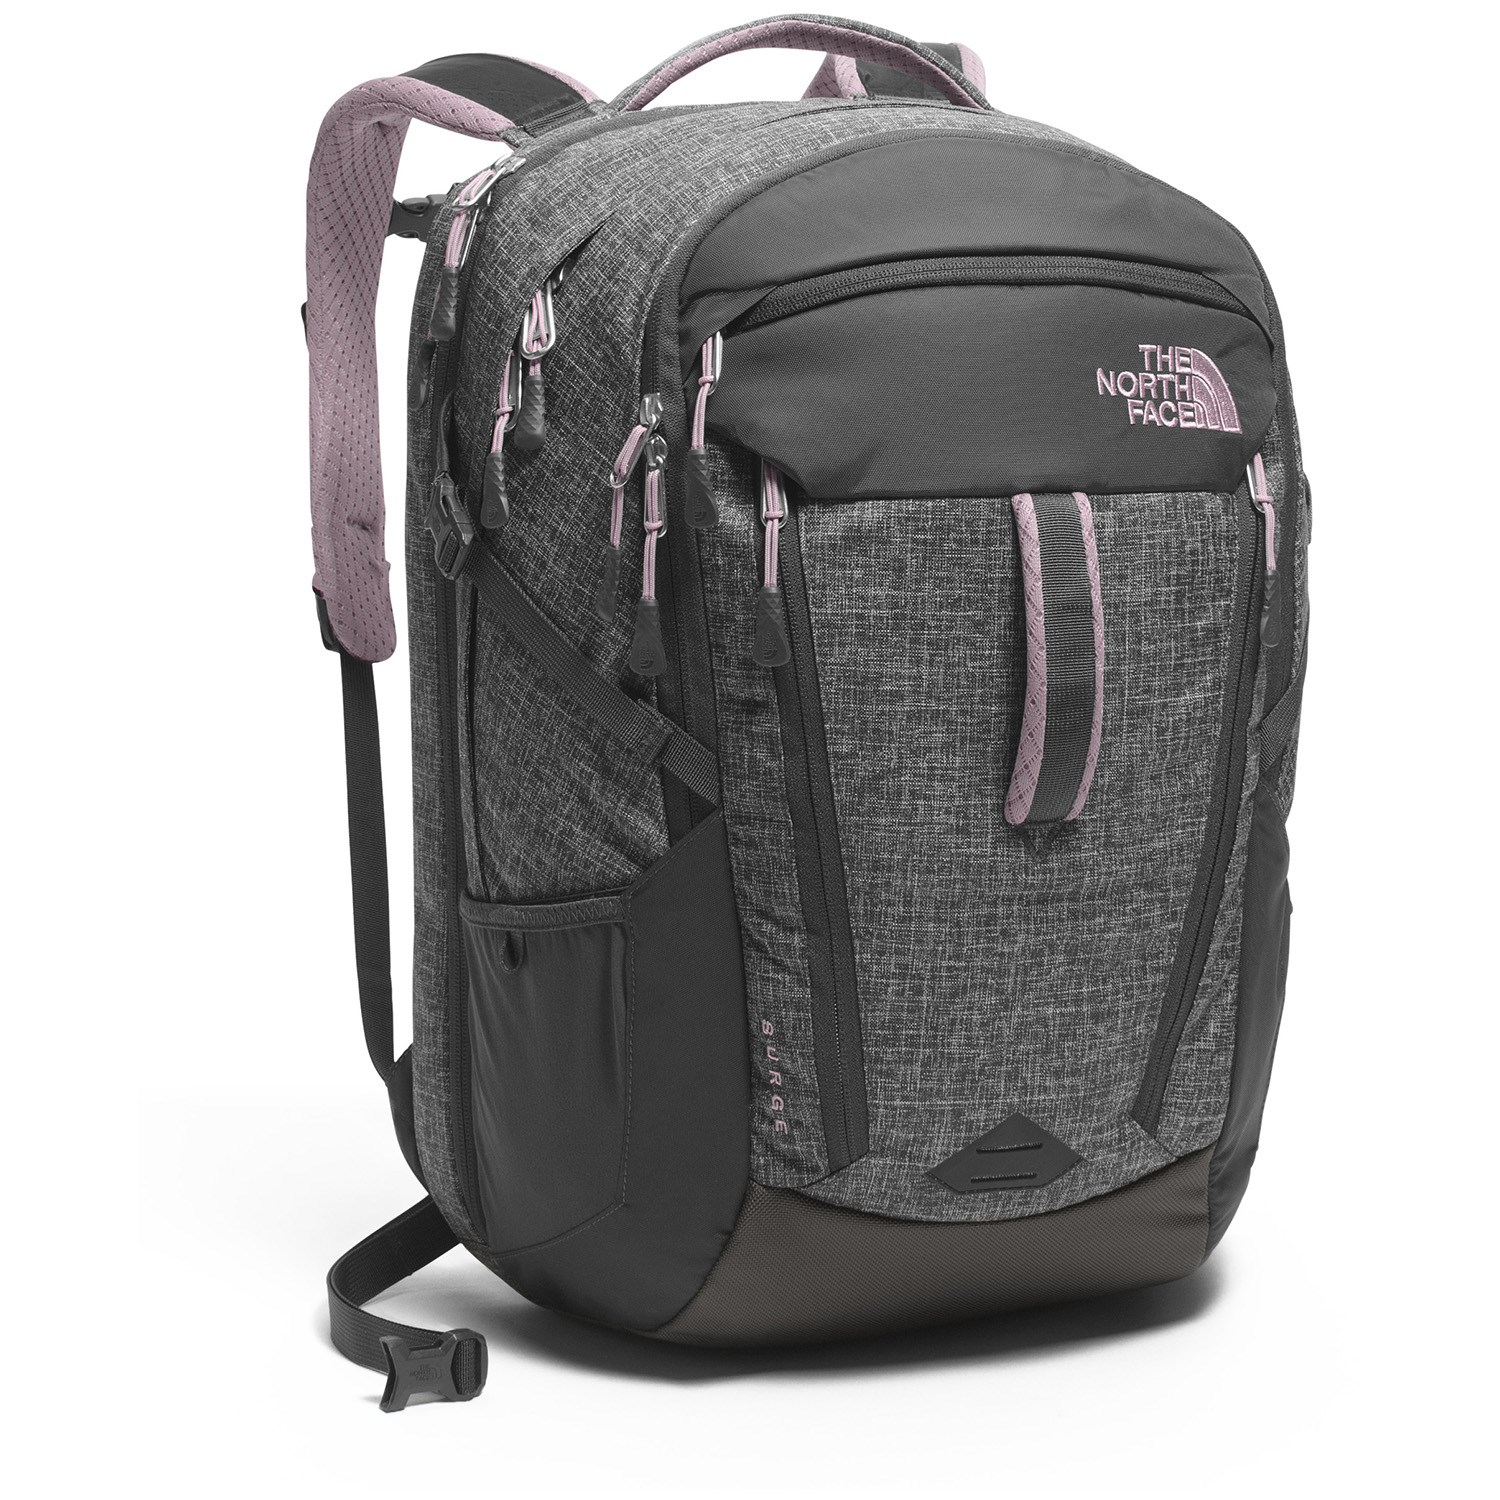 e47040be069 The North Face Surge Backpack - Women's